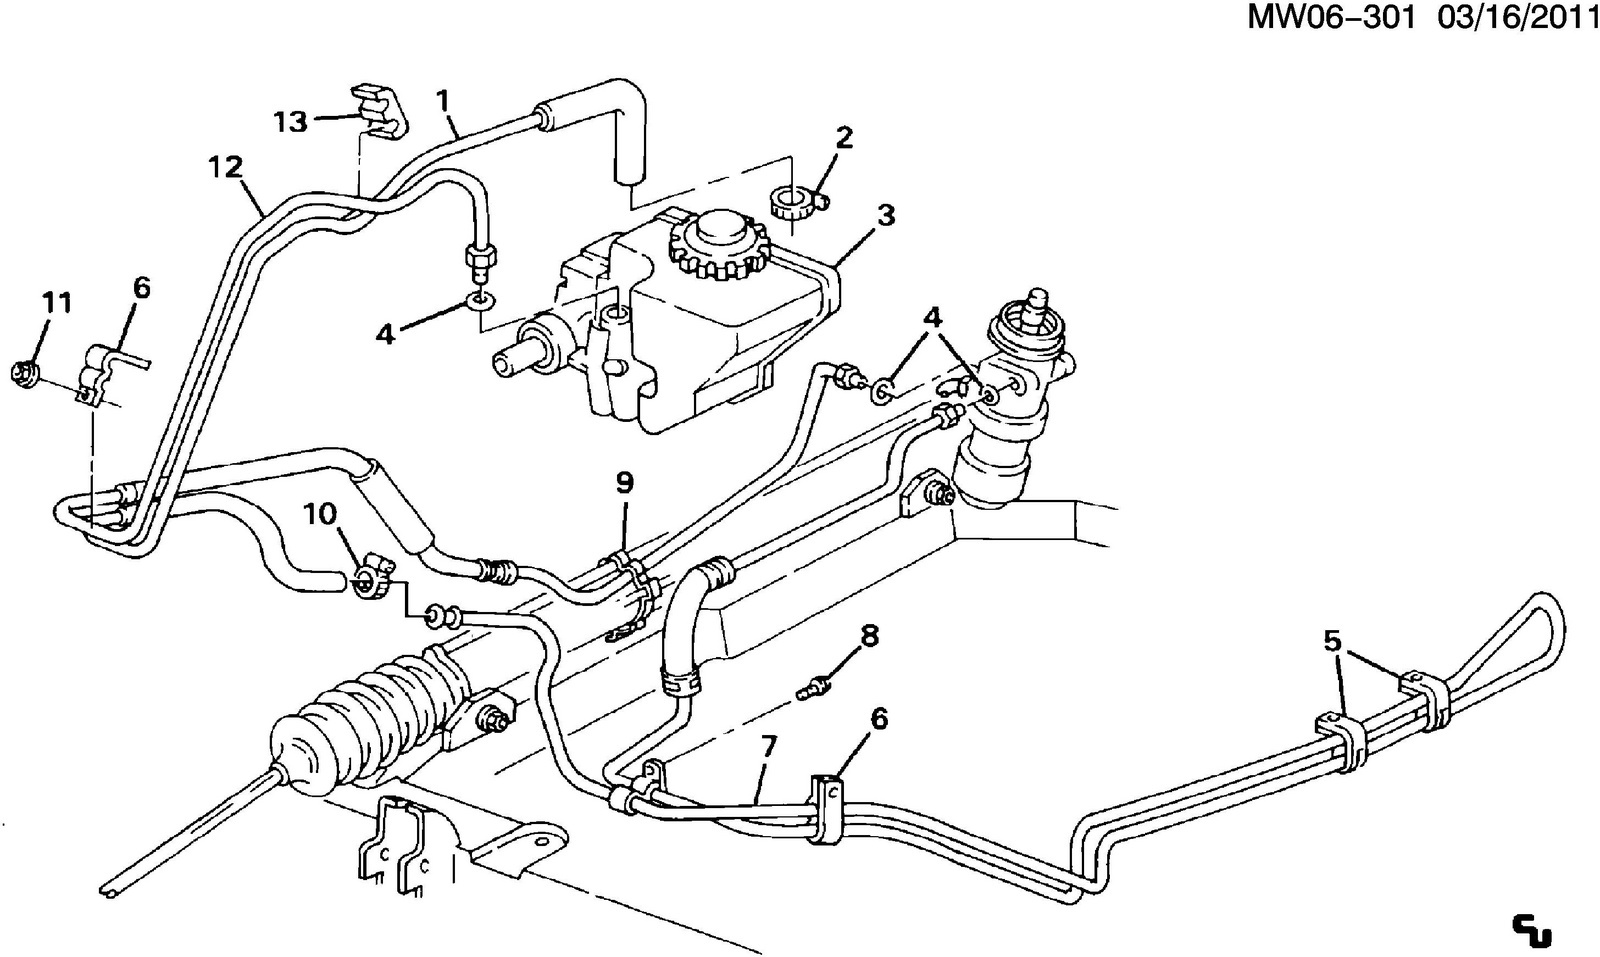 1996 Pontiac Grand Prix Engine Diagram Simple Guide About Wiring 1985 Nissan Pickup Questions 1993 Power Steering Pump